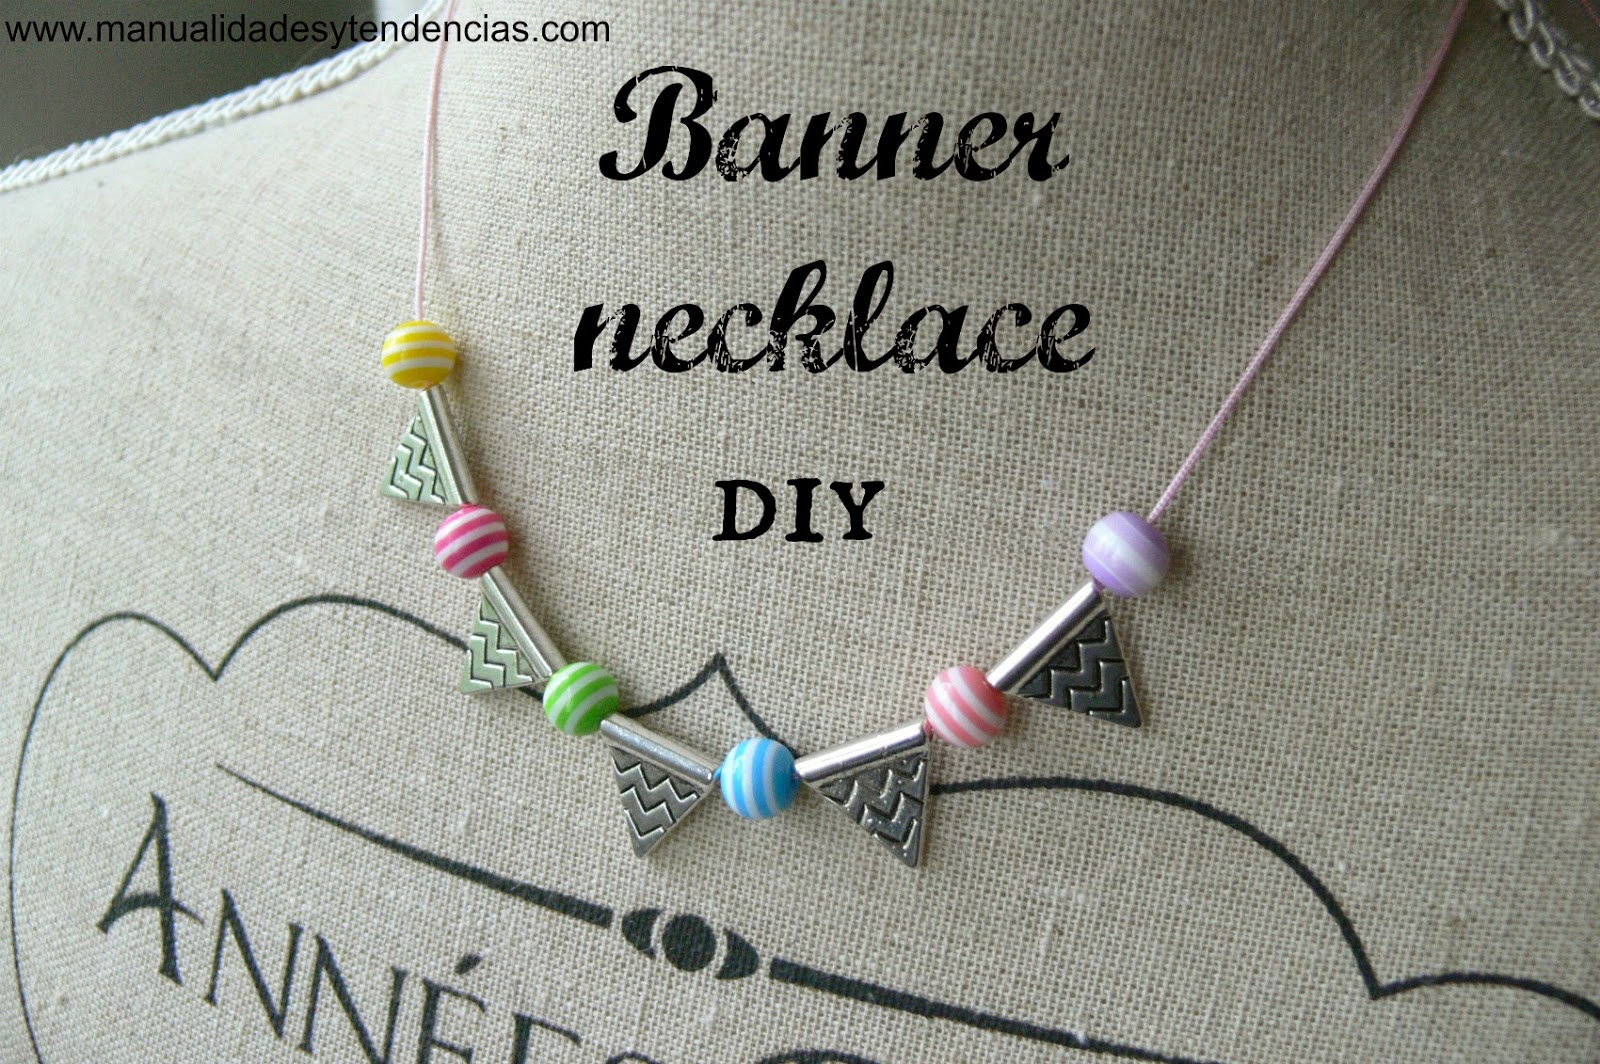 Banner necklace diy